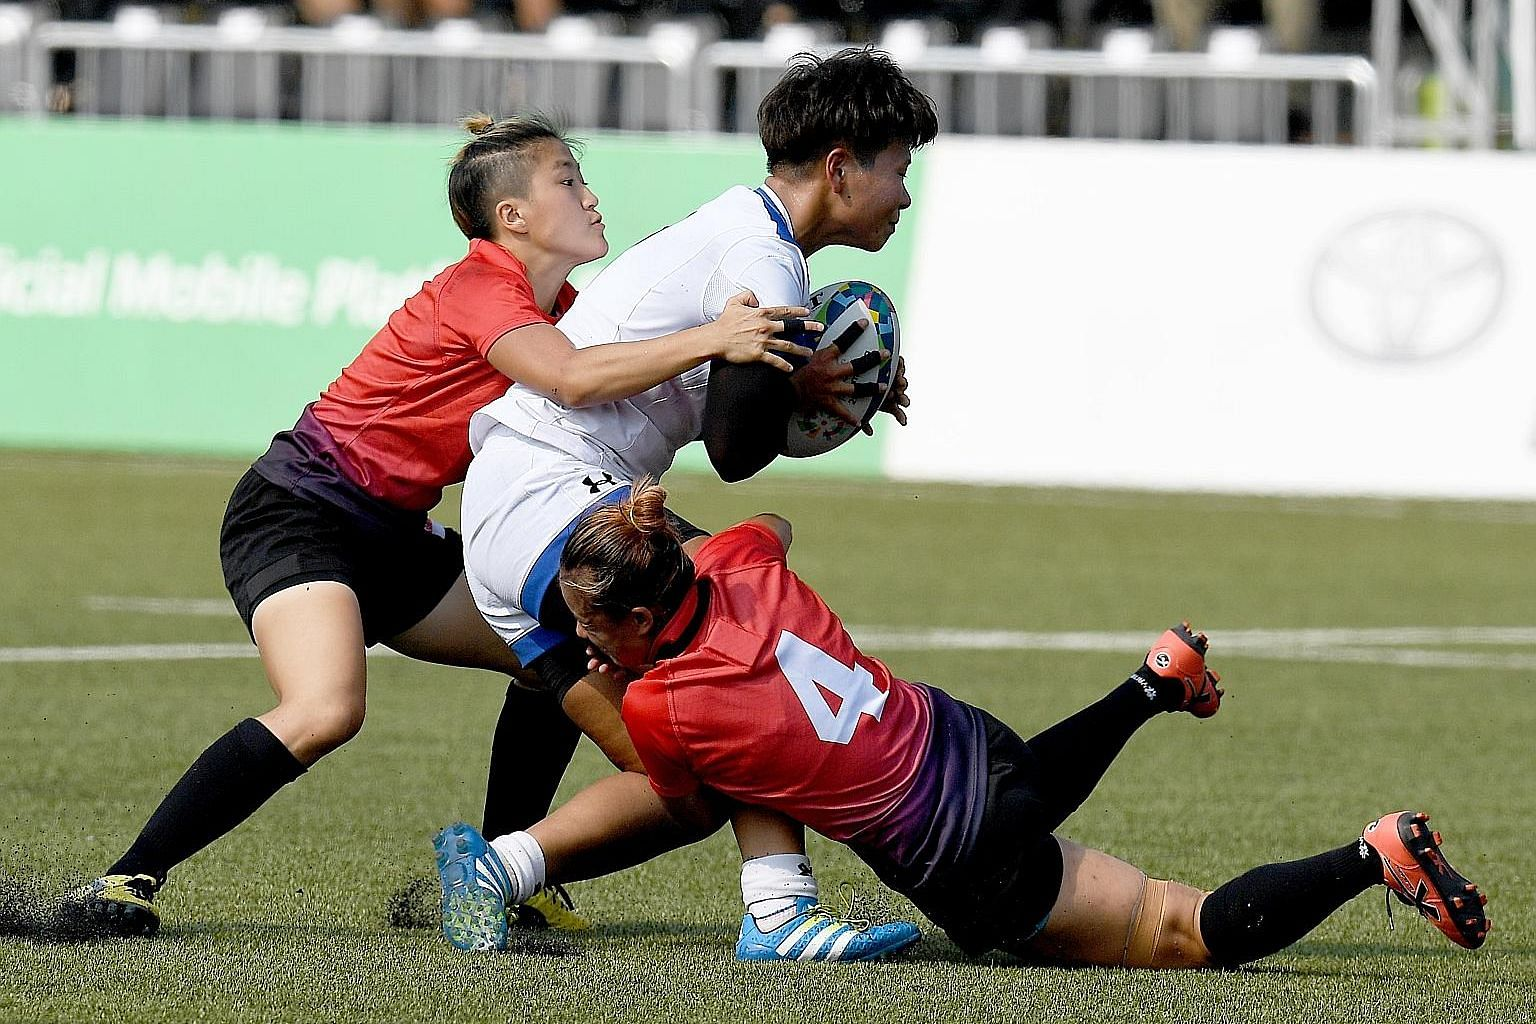 Jayne Chan (far left) and Eunice Chu tackling a South Korean. Chan played just five minutes but scored the winning try for Singapore's 22-17 Group A victory.